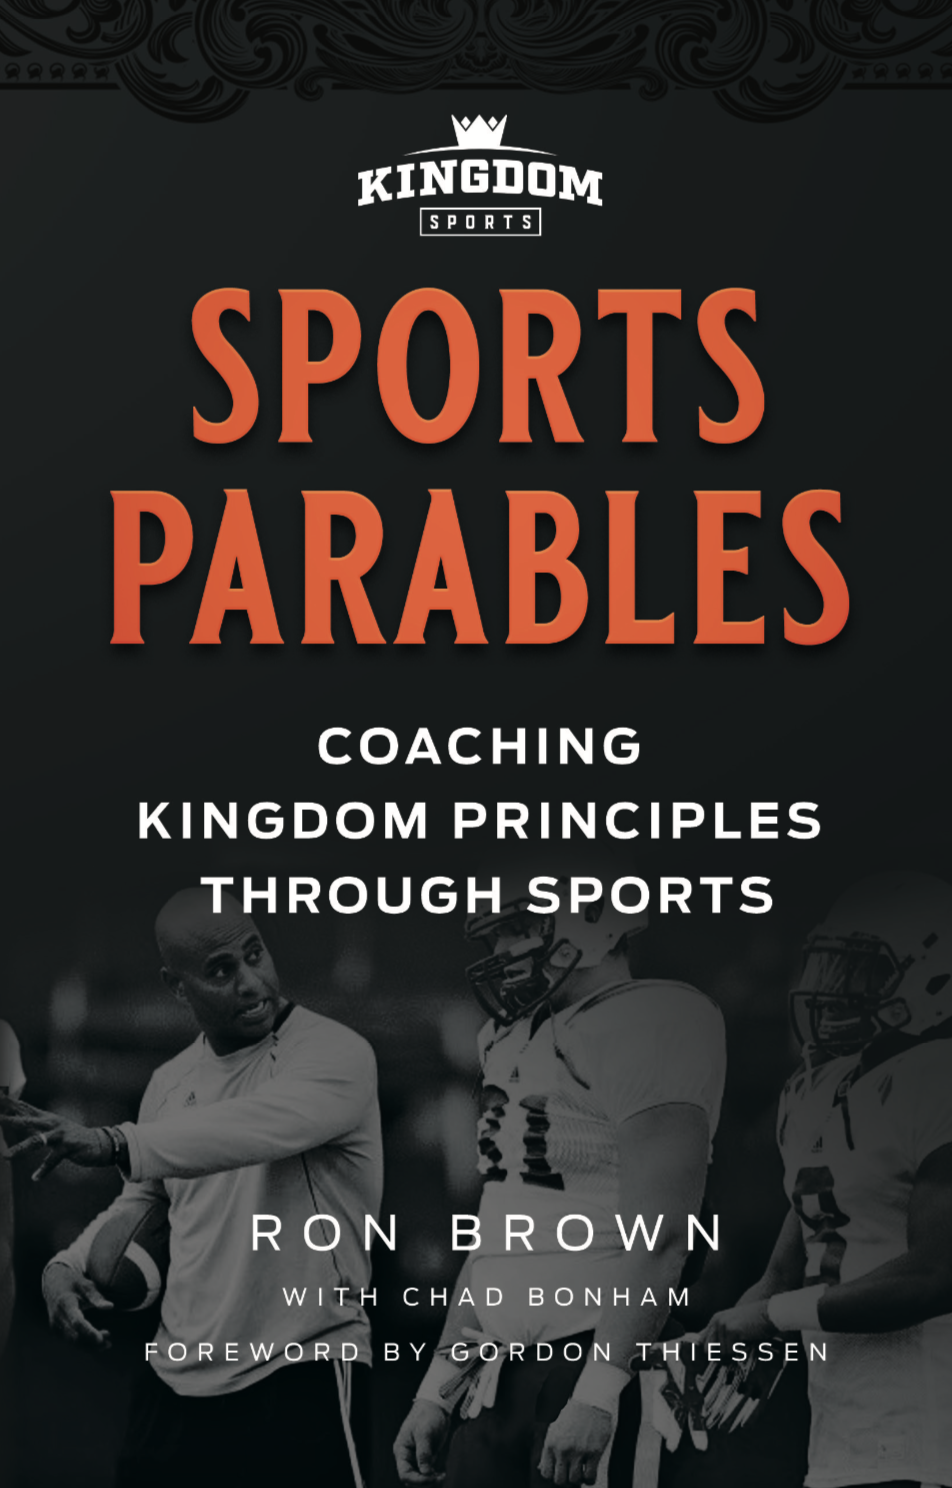 Sports Parables: Coaching Kingdom Principles Through Sports - Sports Parables: Coaching Kingdom Principles Through Sports is part of the Kingdom Sports series of bible studies and training resources for Christian coaches and athletes.Throughout the New Testament gospels, some of Jesus' most effective teachings were presented through the vehicle of parables—fictional stories that utilized relevant scenarios based on the current day and age.In Sports Parables, Coach Ron Brown shares powerful modern-day analogies to help athletes, coaches, parents, and ministers deliver biblical truths from the practice field to the pulpit. Topics include fear, motivation, focus, unity, salvation, discipleship, evangelism, determination, deception, and spiritual hunger.Click the image to purchase